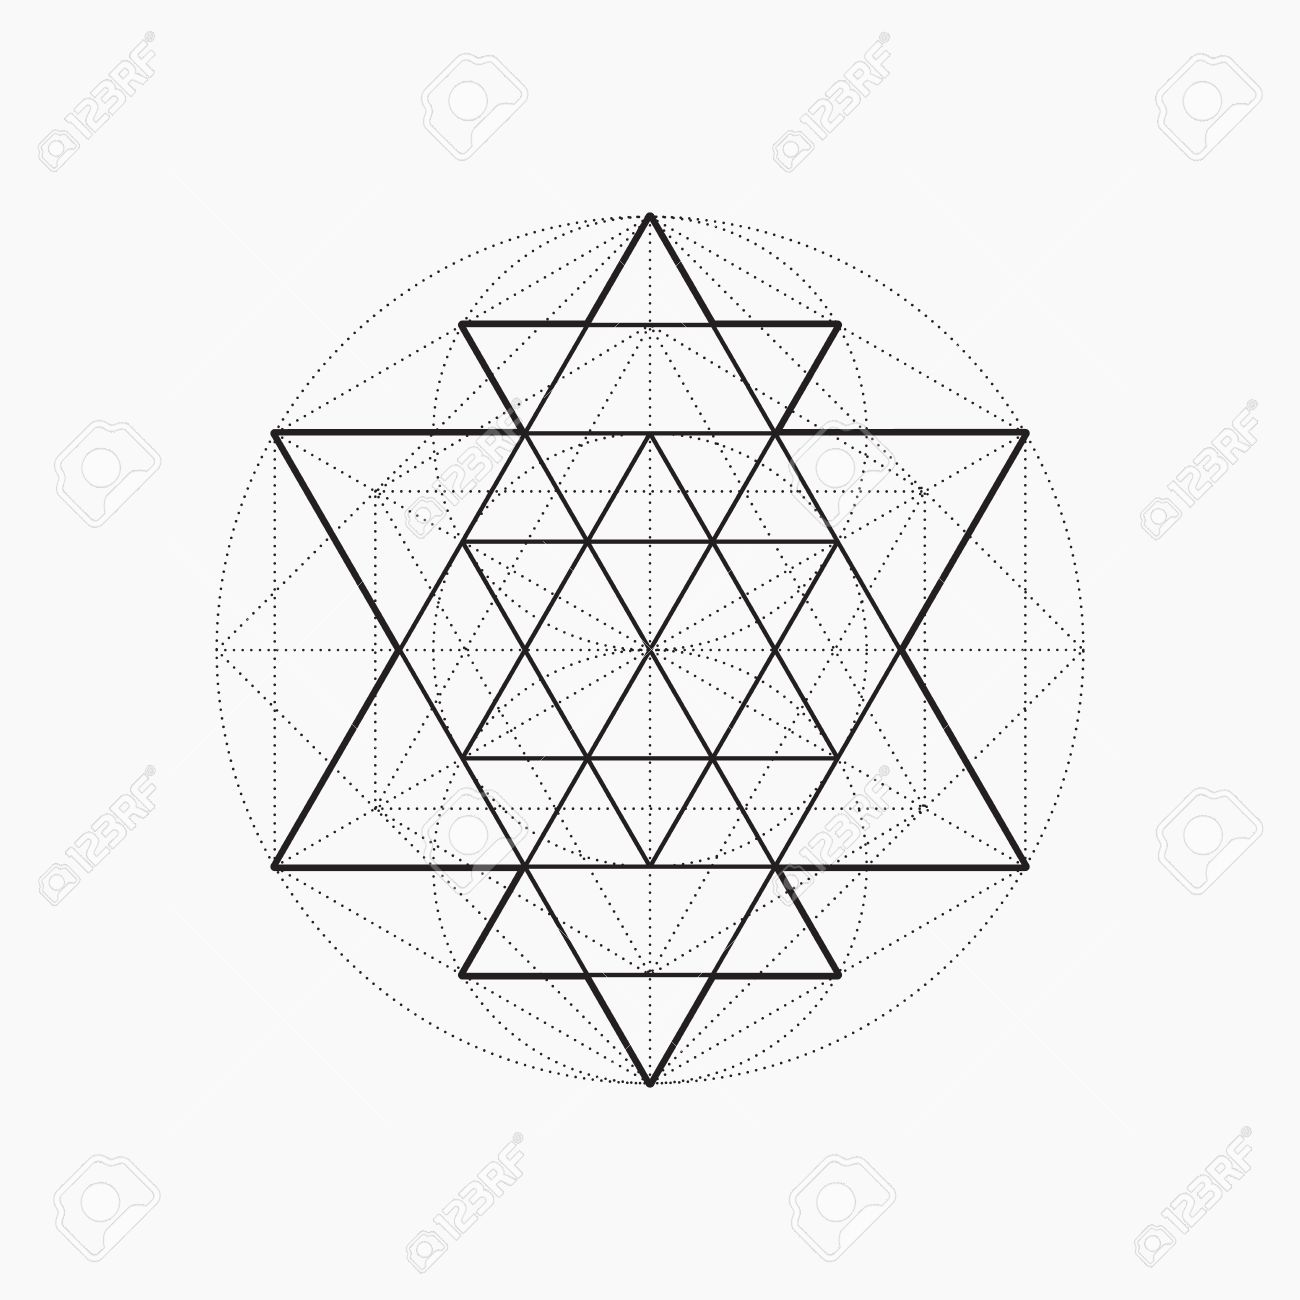 Geometric shapes, line design, triangle, sacred geometry, abstract symbol of the constitution of man, vector illustration - 51265158